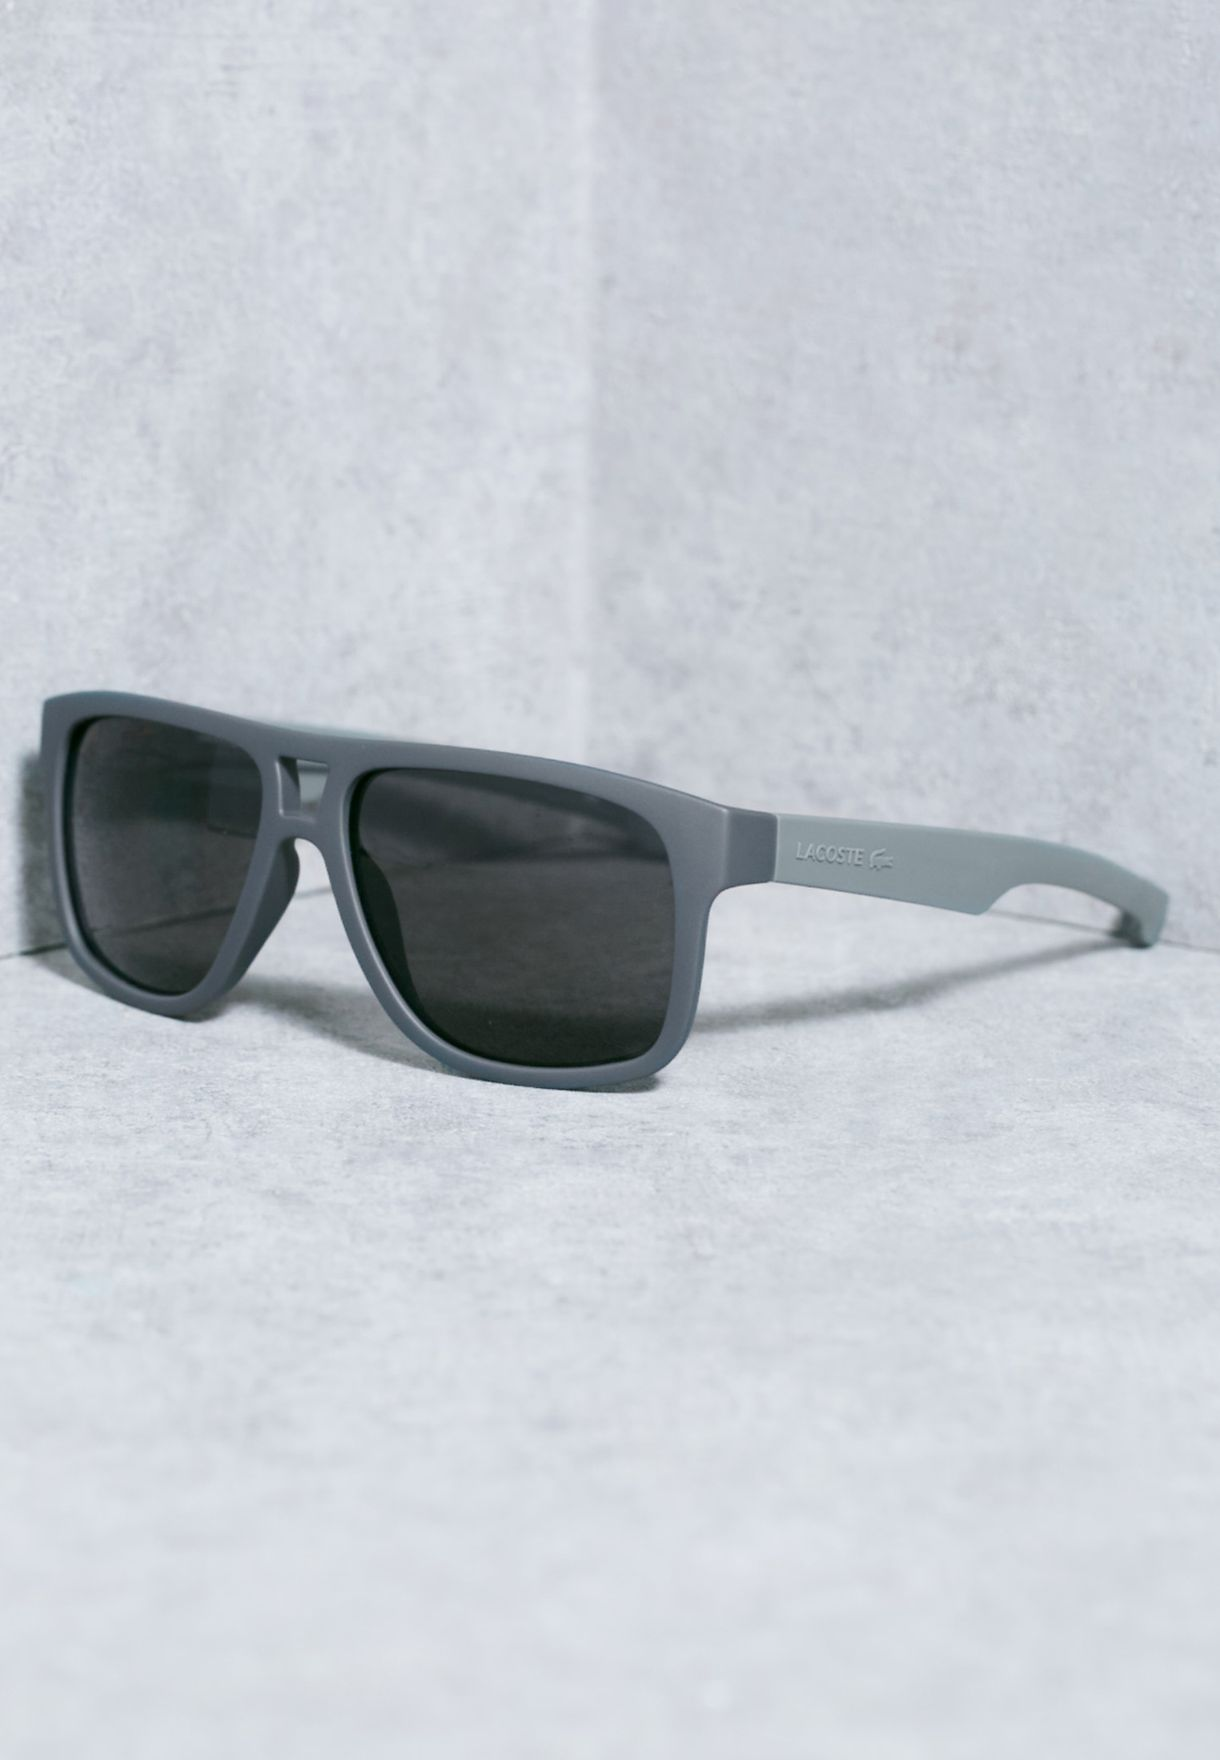 67b5f2d1921 Shop Lacoste grey Magnetic Frame Rectangle Sunglasses L817S-035 for ...